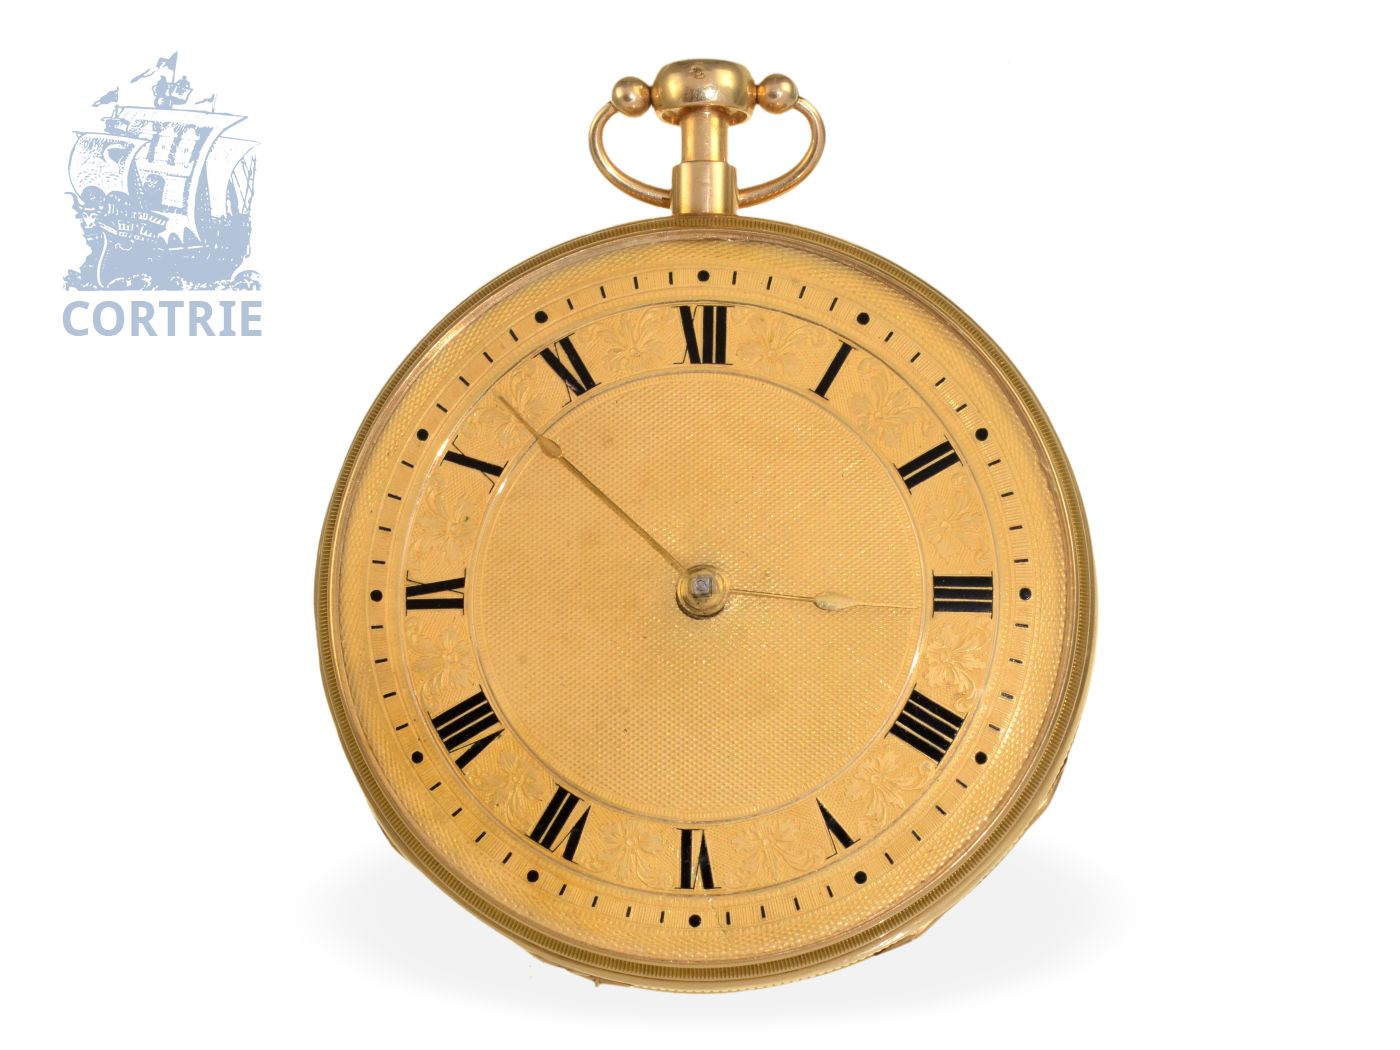 Pocket watch: very big and fine music watch with repeater, probably Piguet & Meylan ca. 1820-